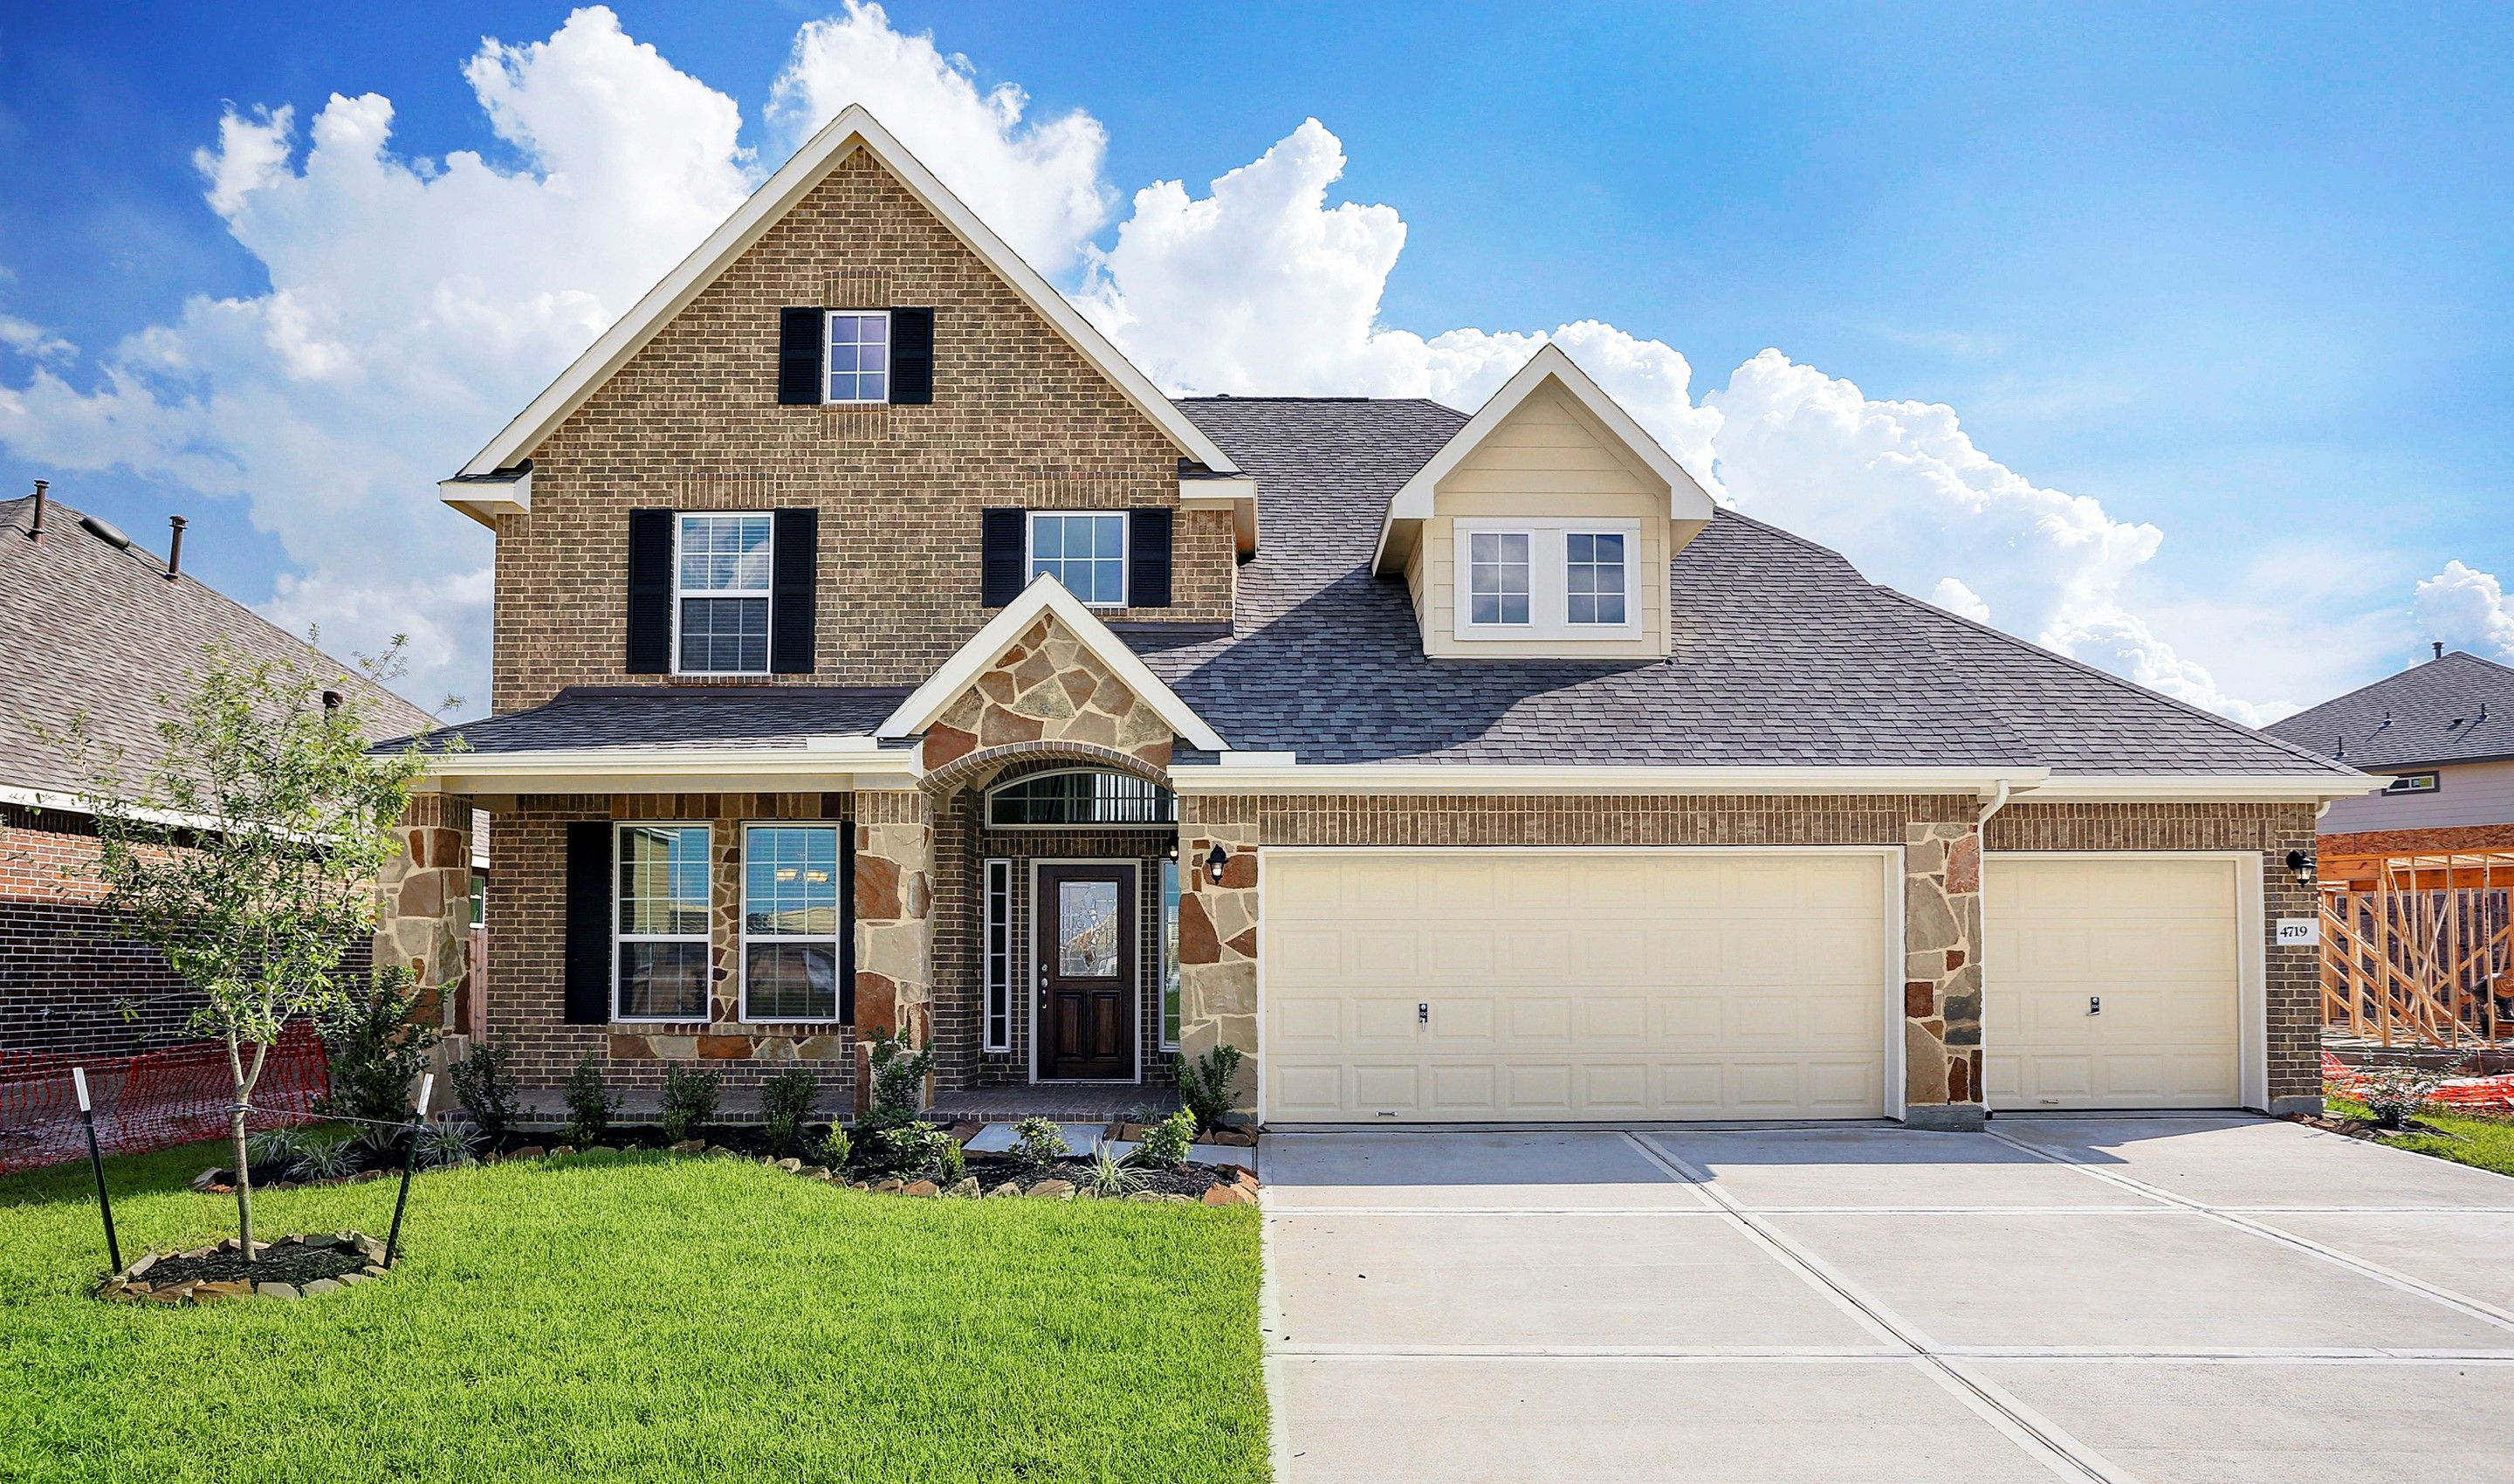 k hovnanian homes pearland tx communities u0026 homes for sale